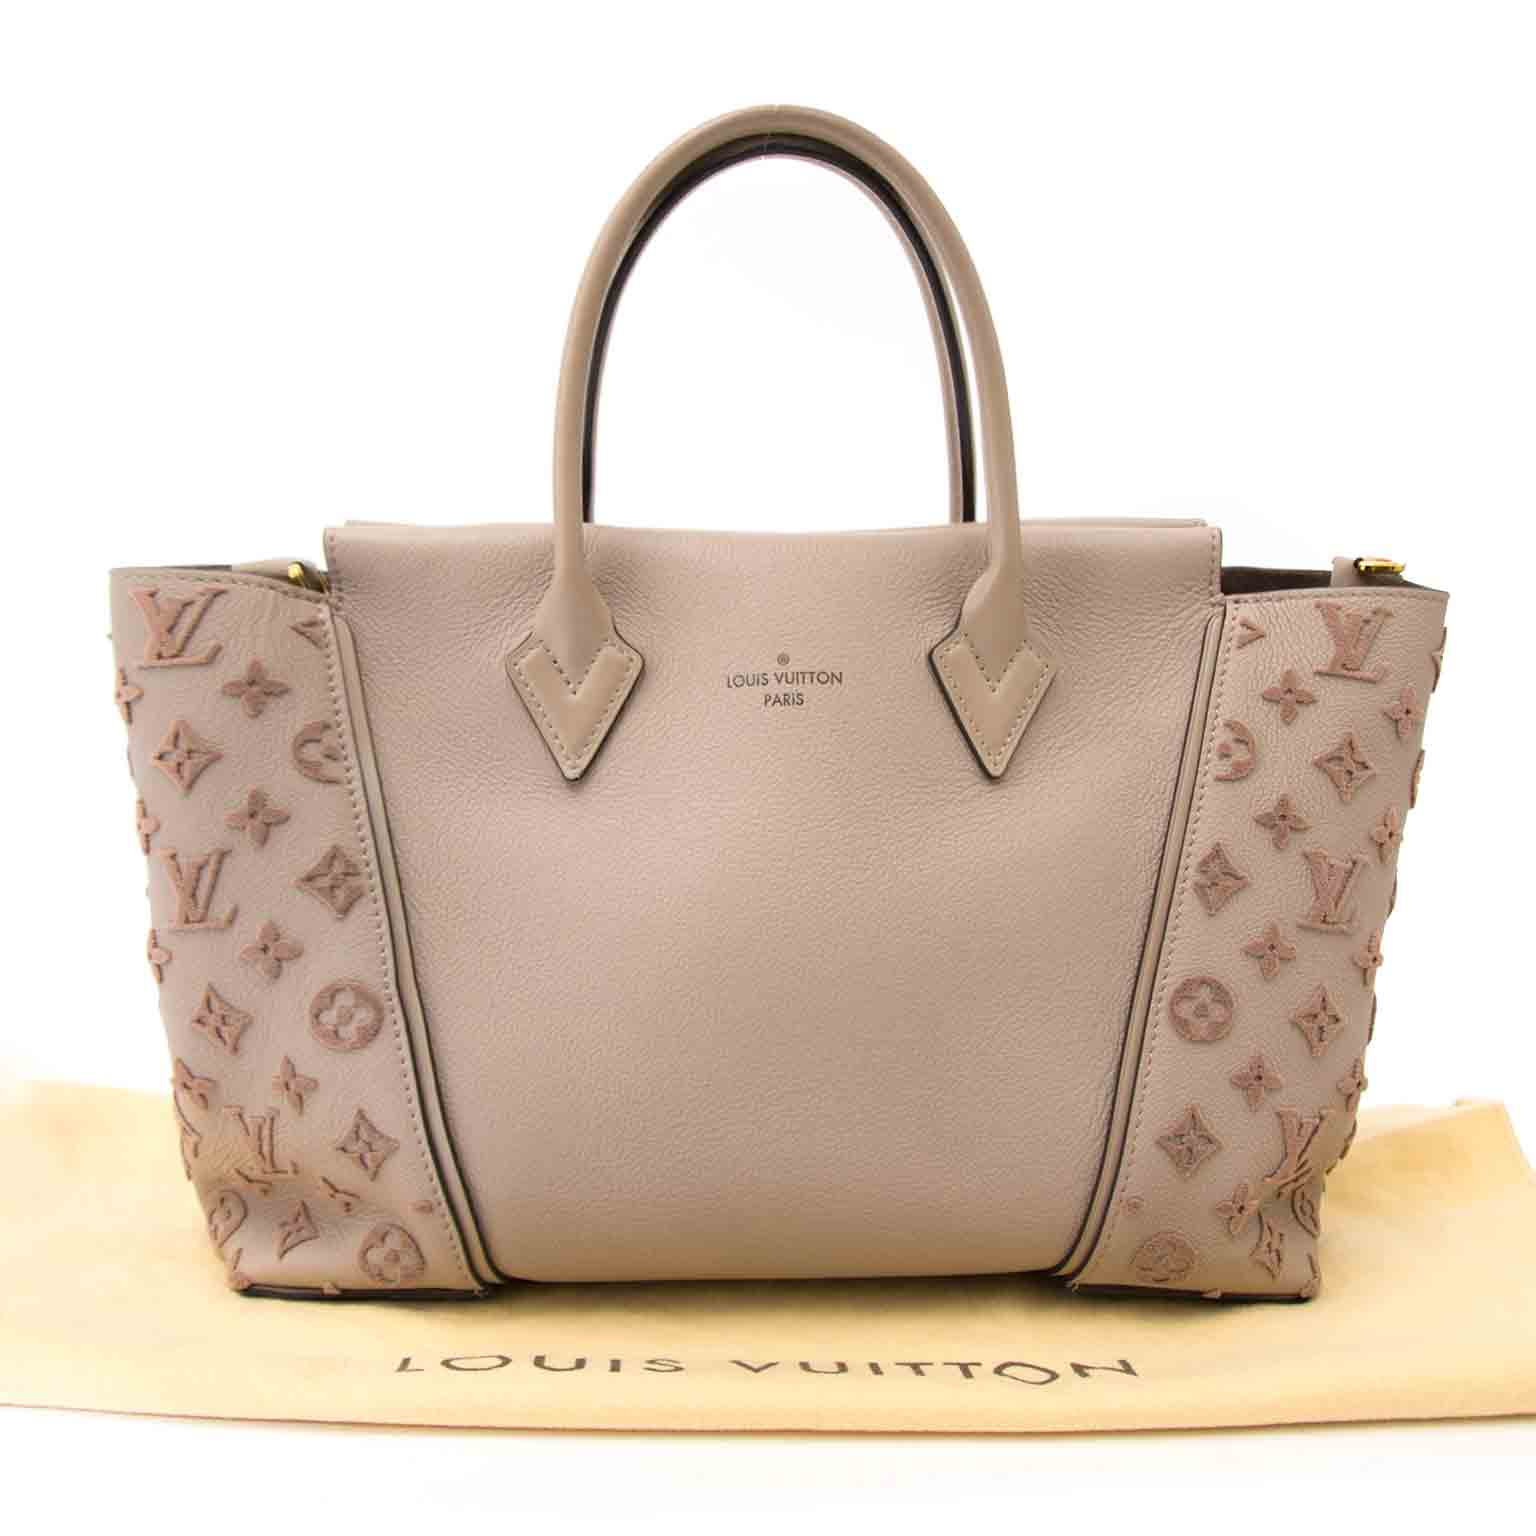 searching for the perfect christmas gift Louis Vuitton Veau Cachemire Tote W PM Galet